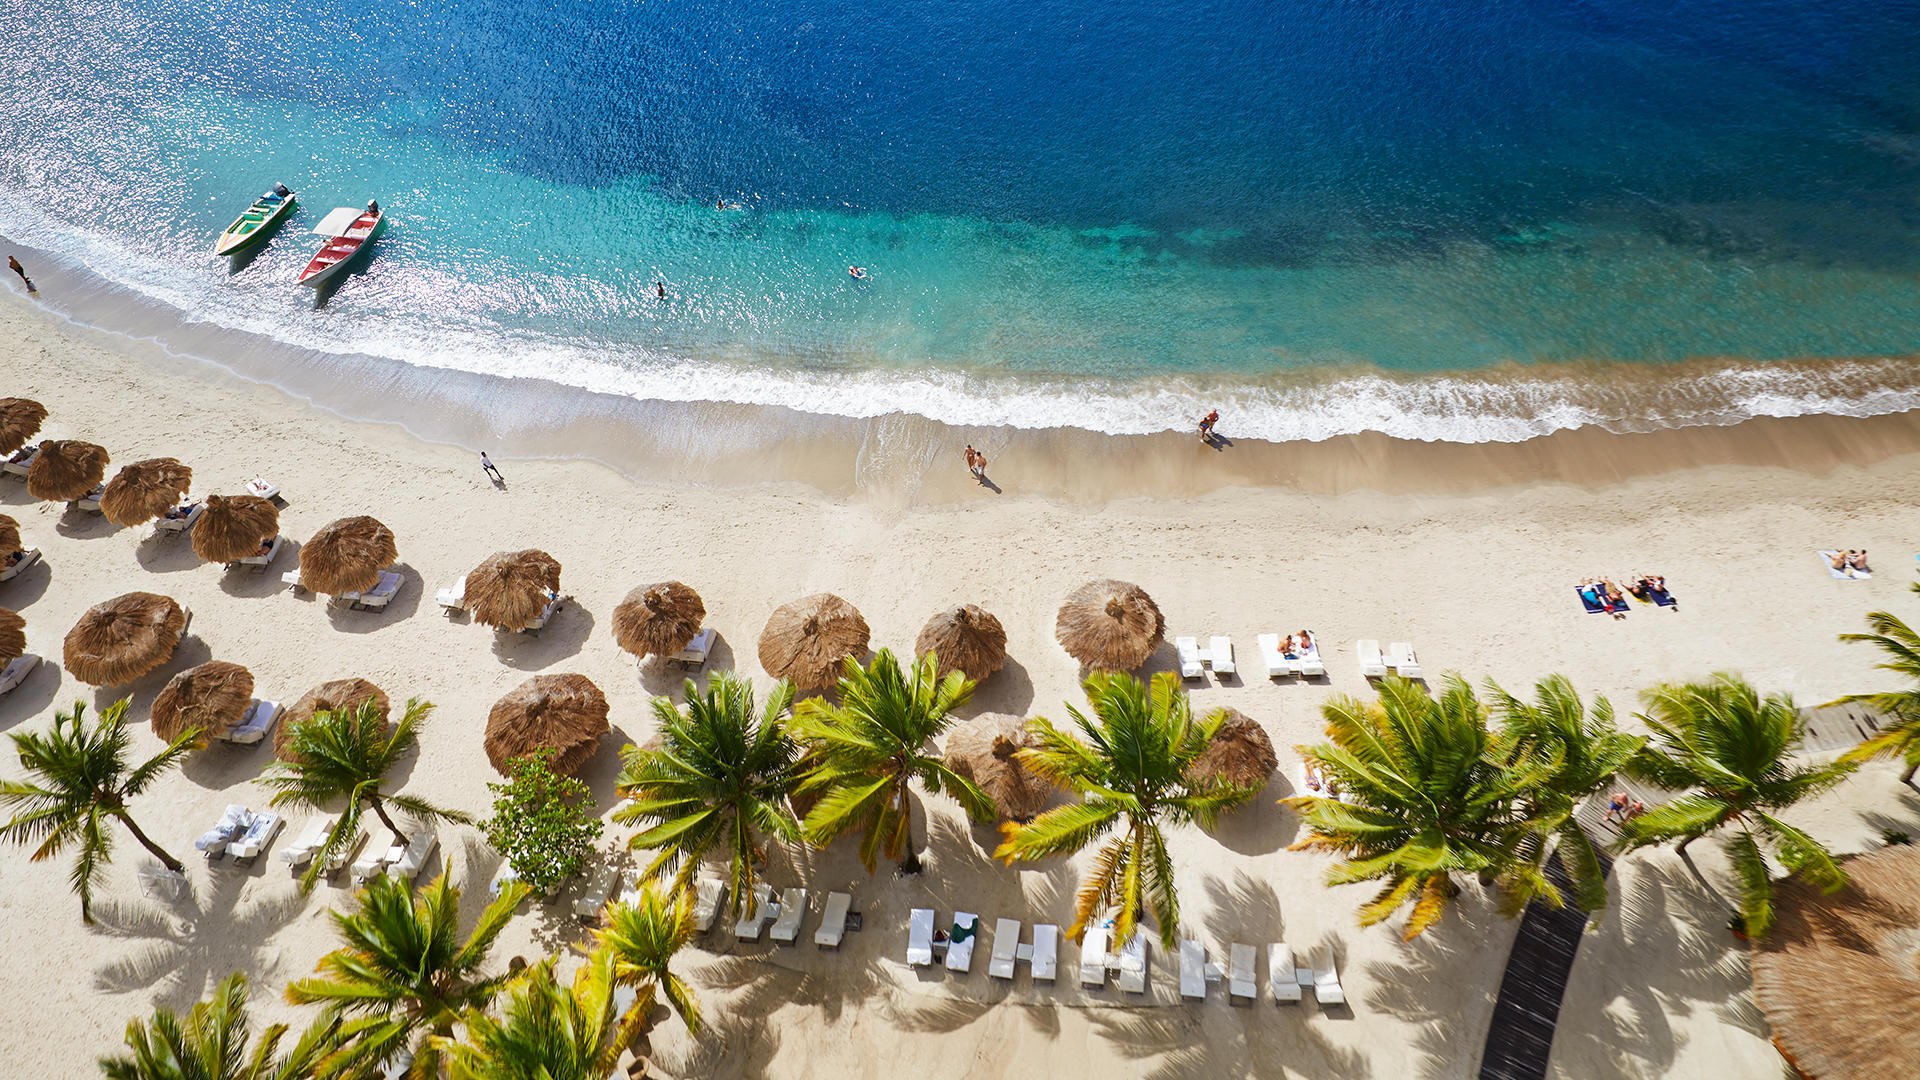 ViceroySugarBeach_AerialView